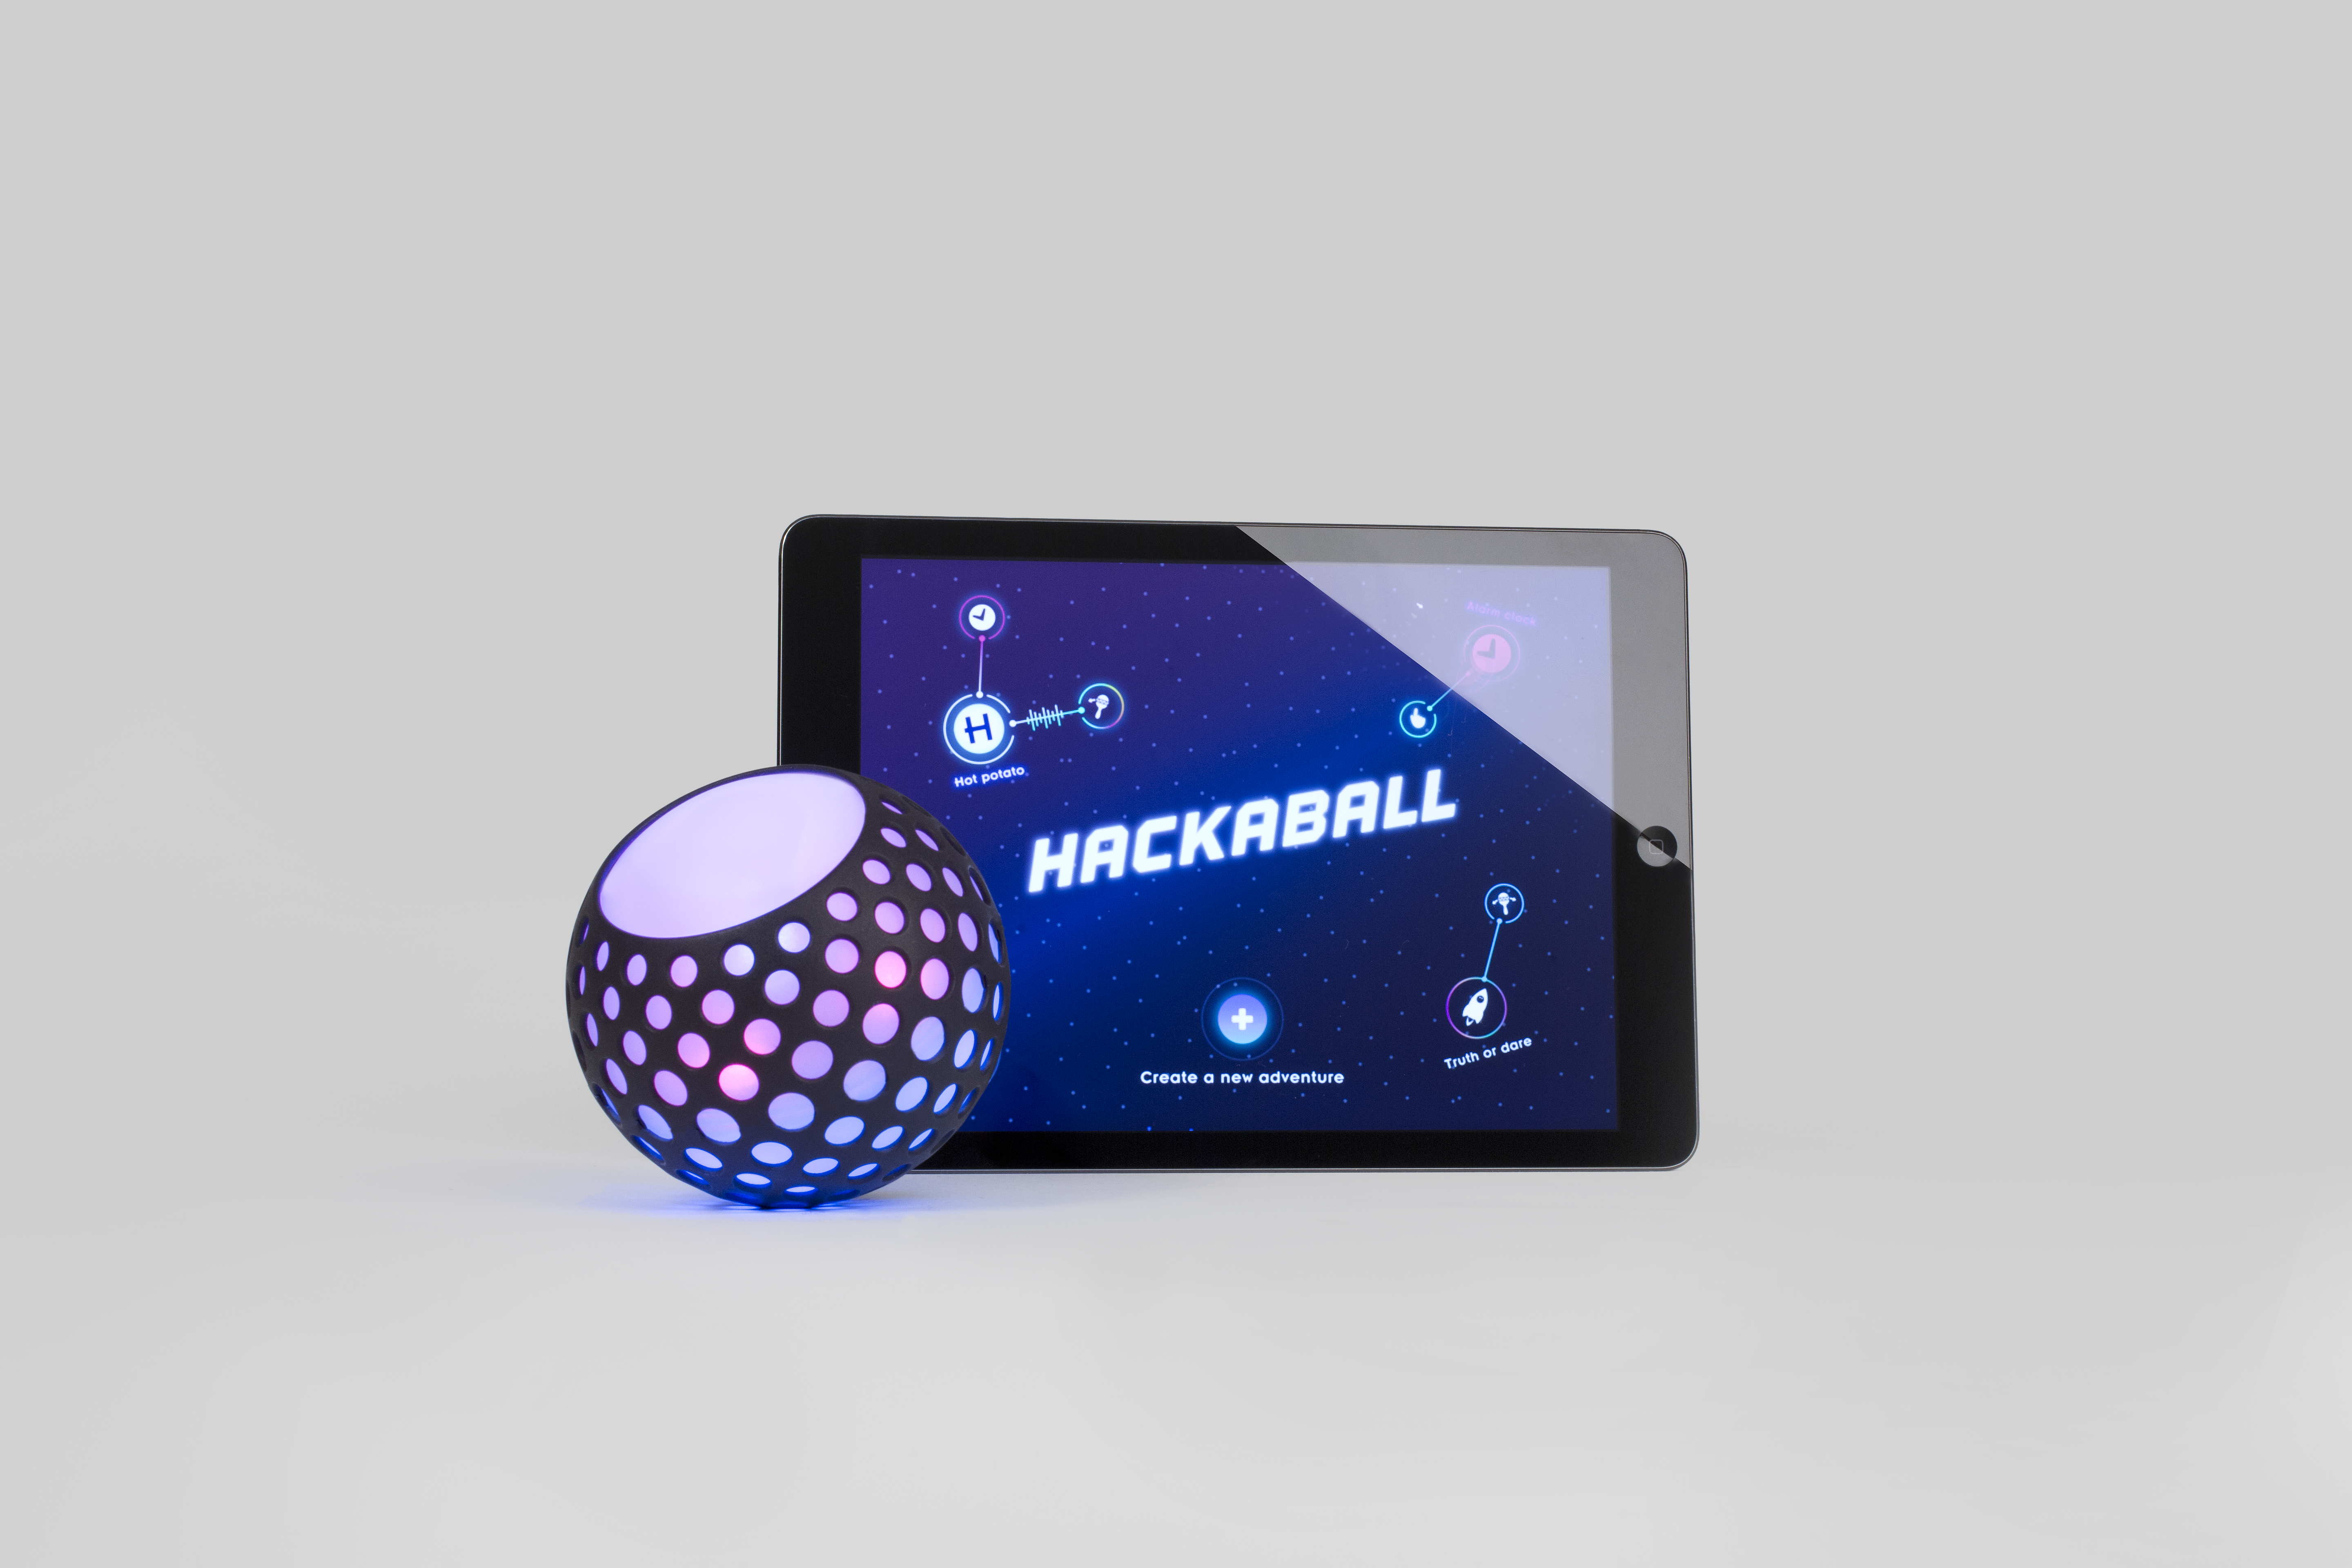 Made by Many's Hackable, which was the result of a successful kickstarter campaign